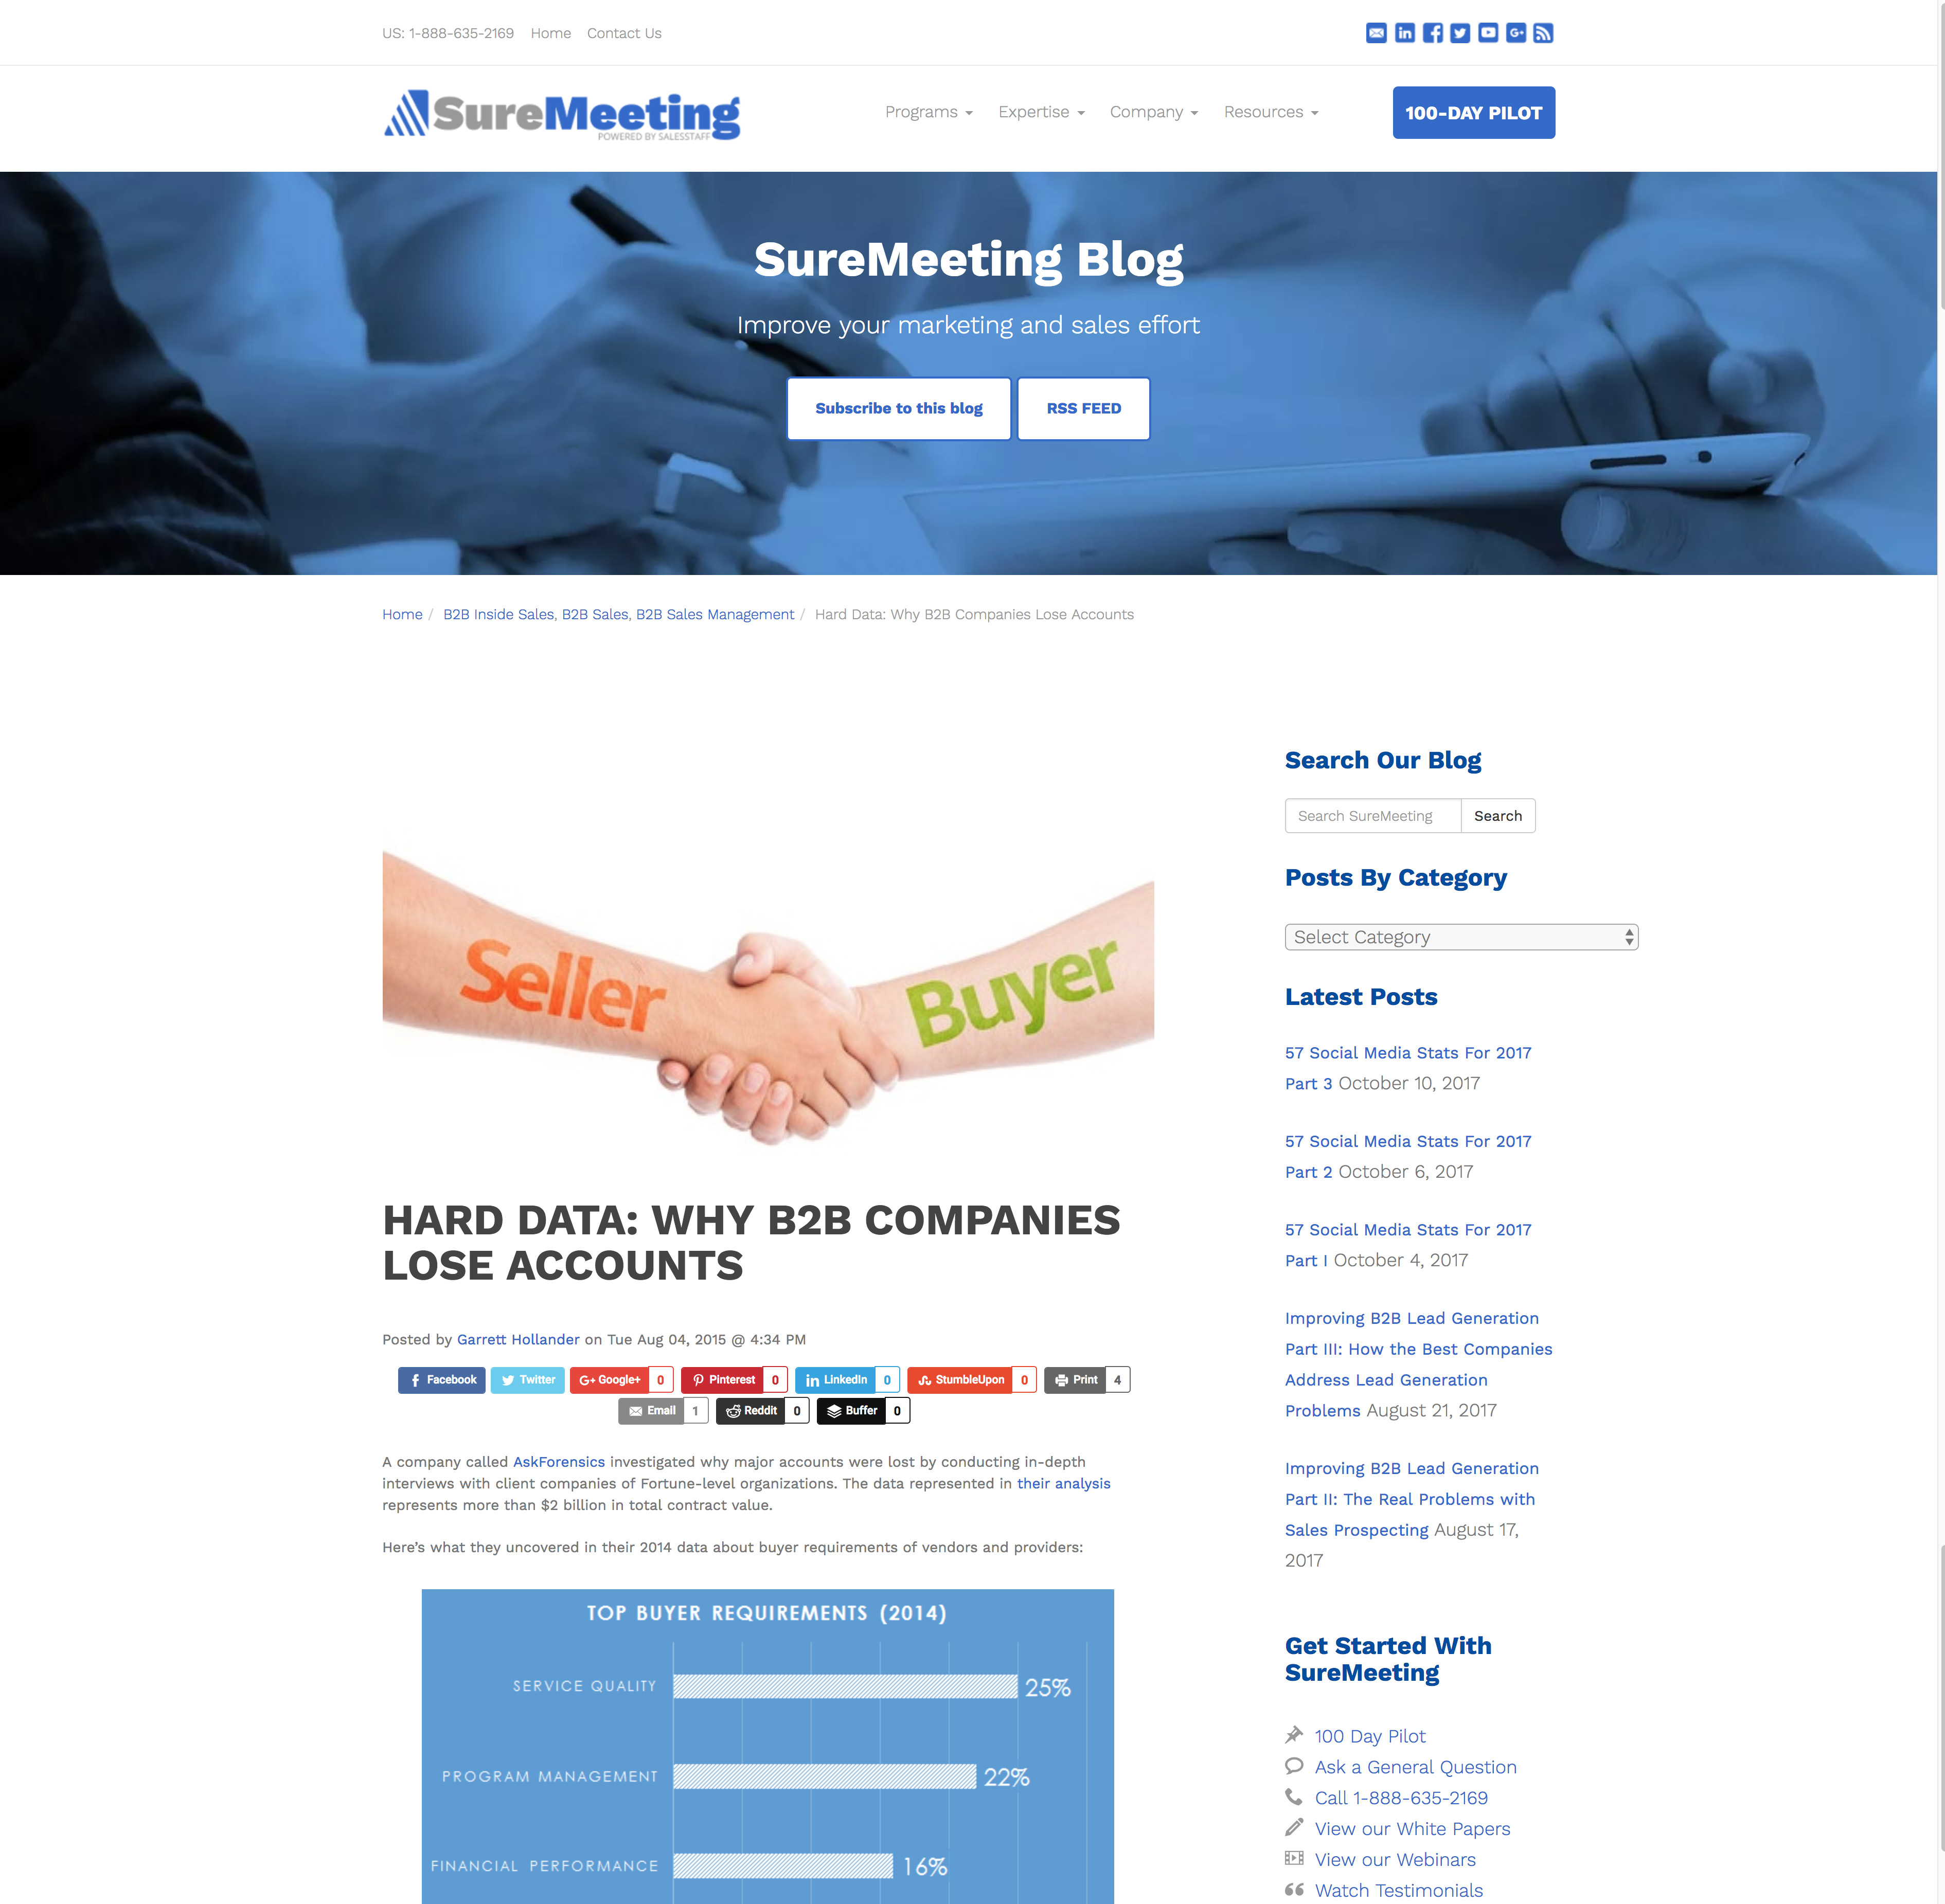 SureMeeting Blog | August 2015